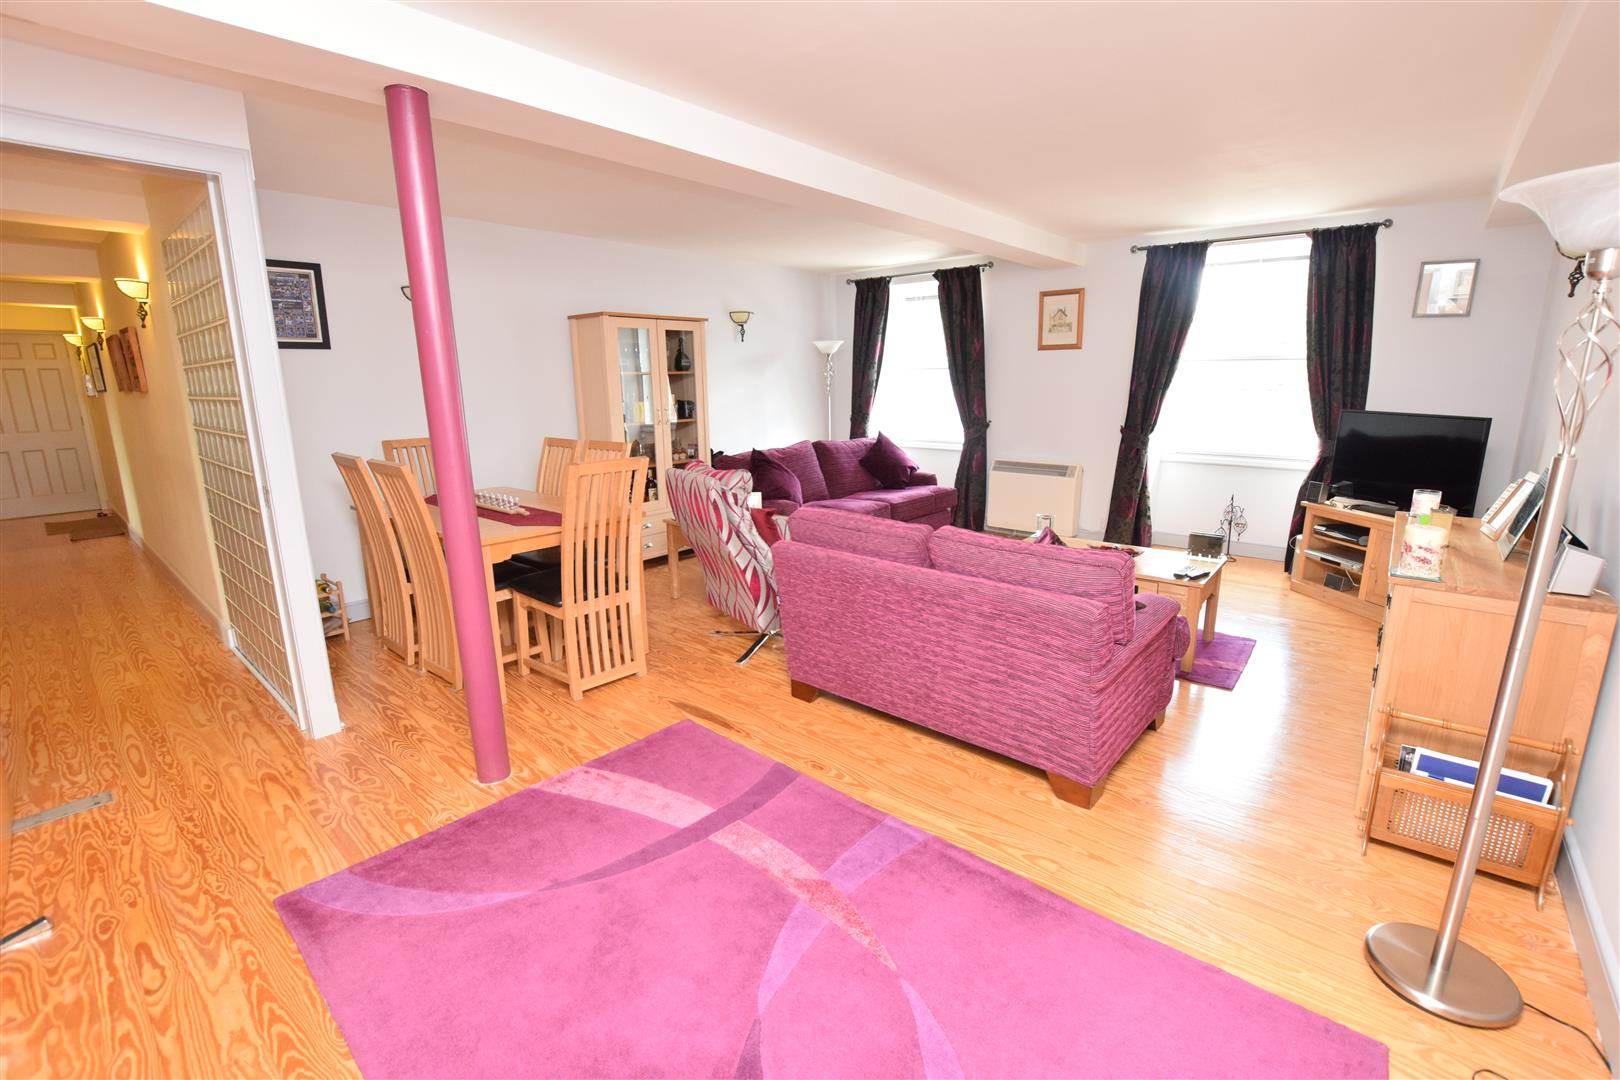 Flat 3C, East Mill, Stanley Mills, Cotton Yard, Stanley, Stanley Perth, Perthshire, PH1 4RB, UK